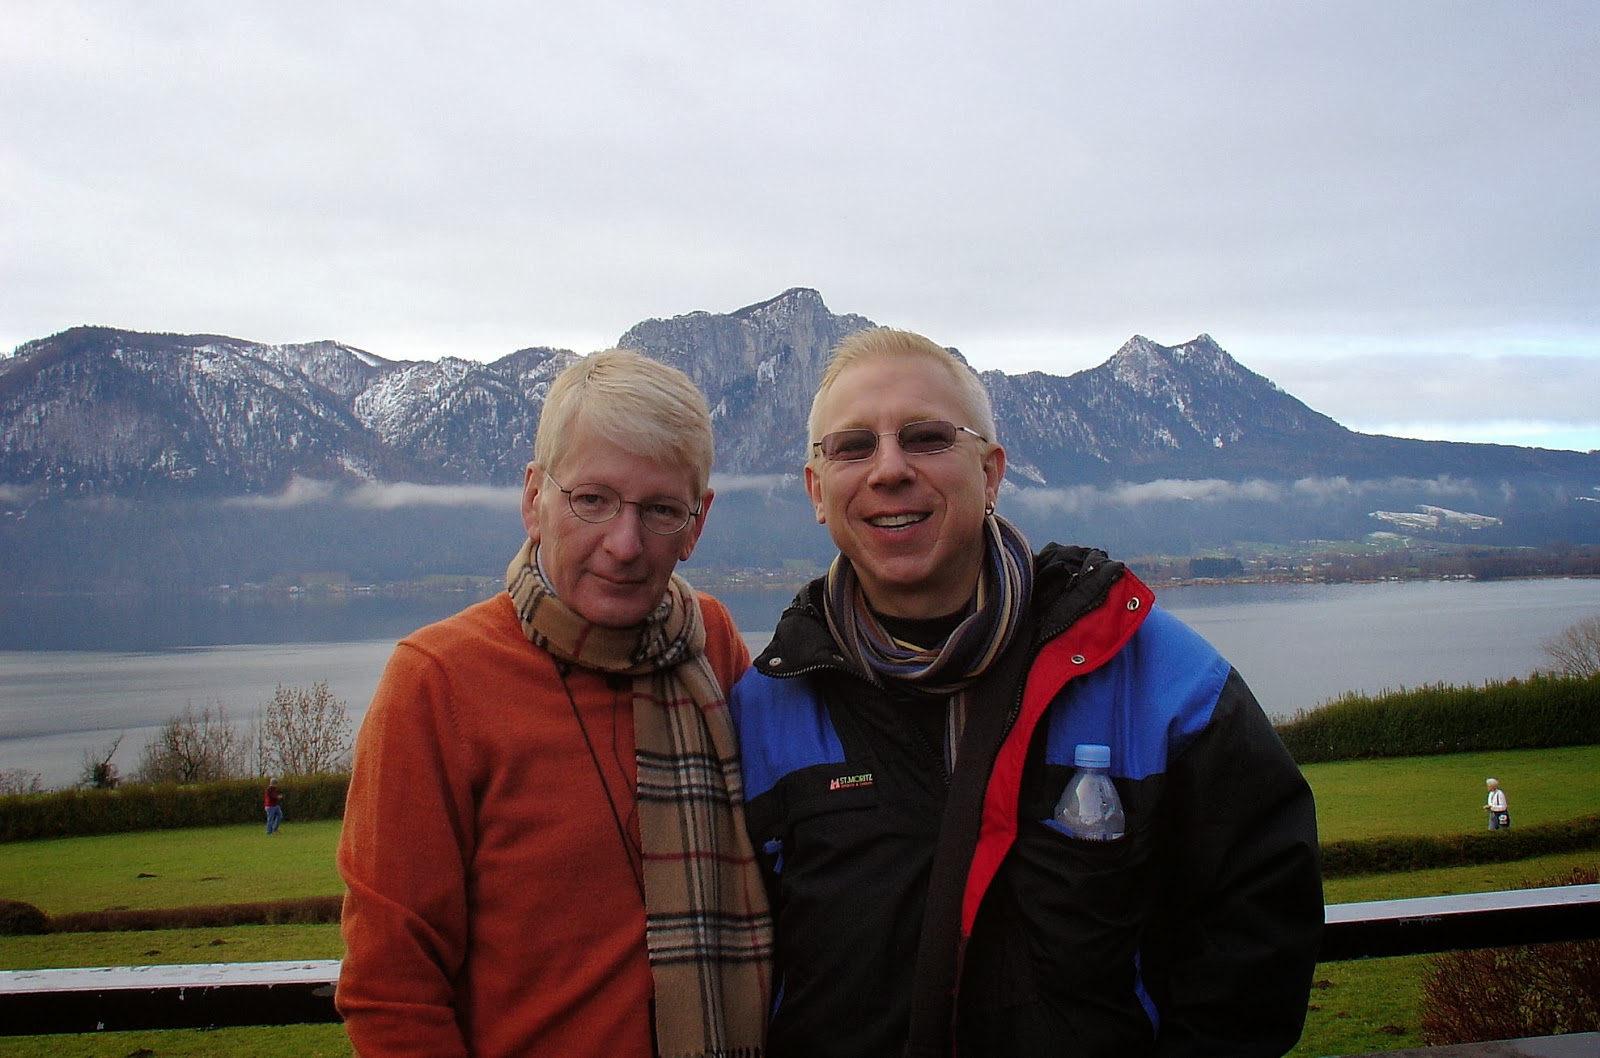 Matthew and I pause to take in the stunning Alpine scenery at the rest stop en route to Salzburg.